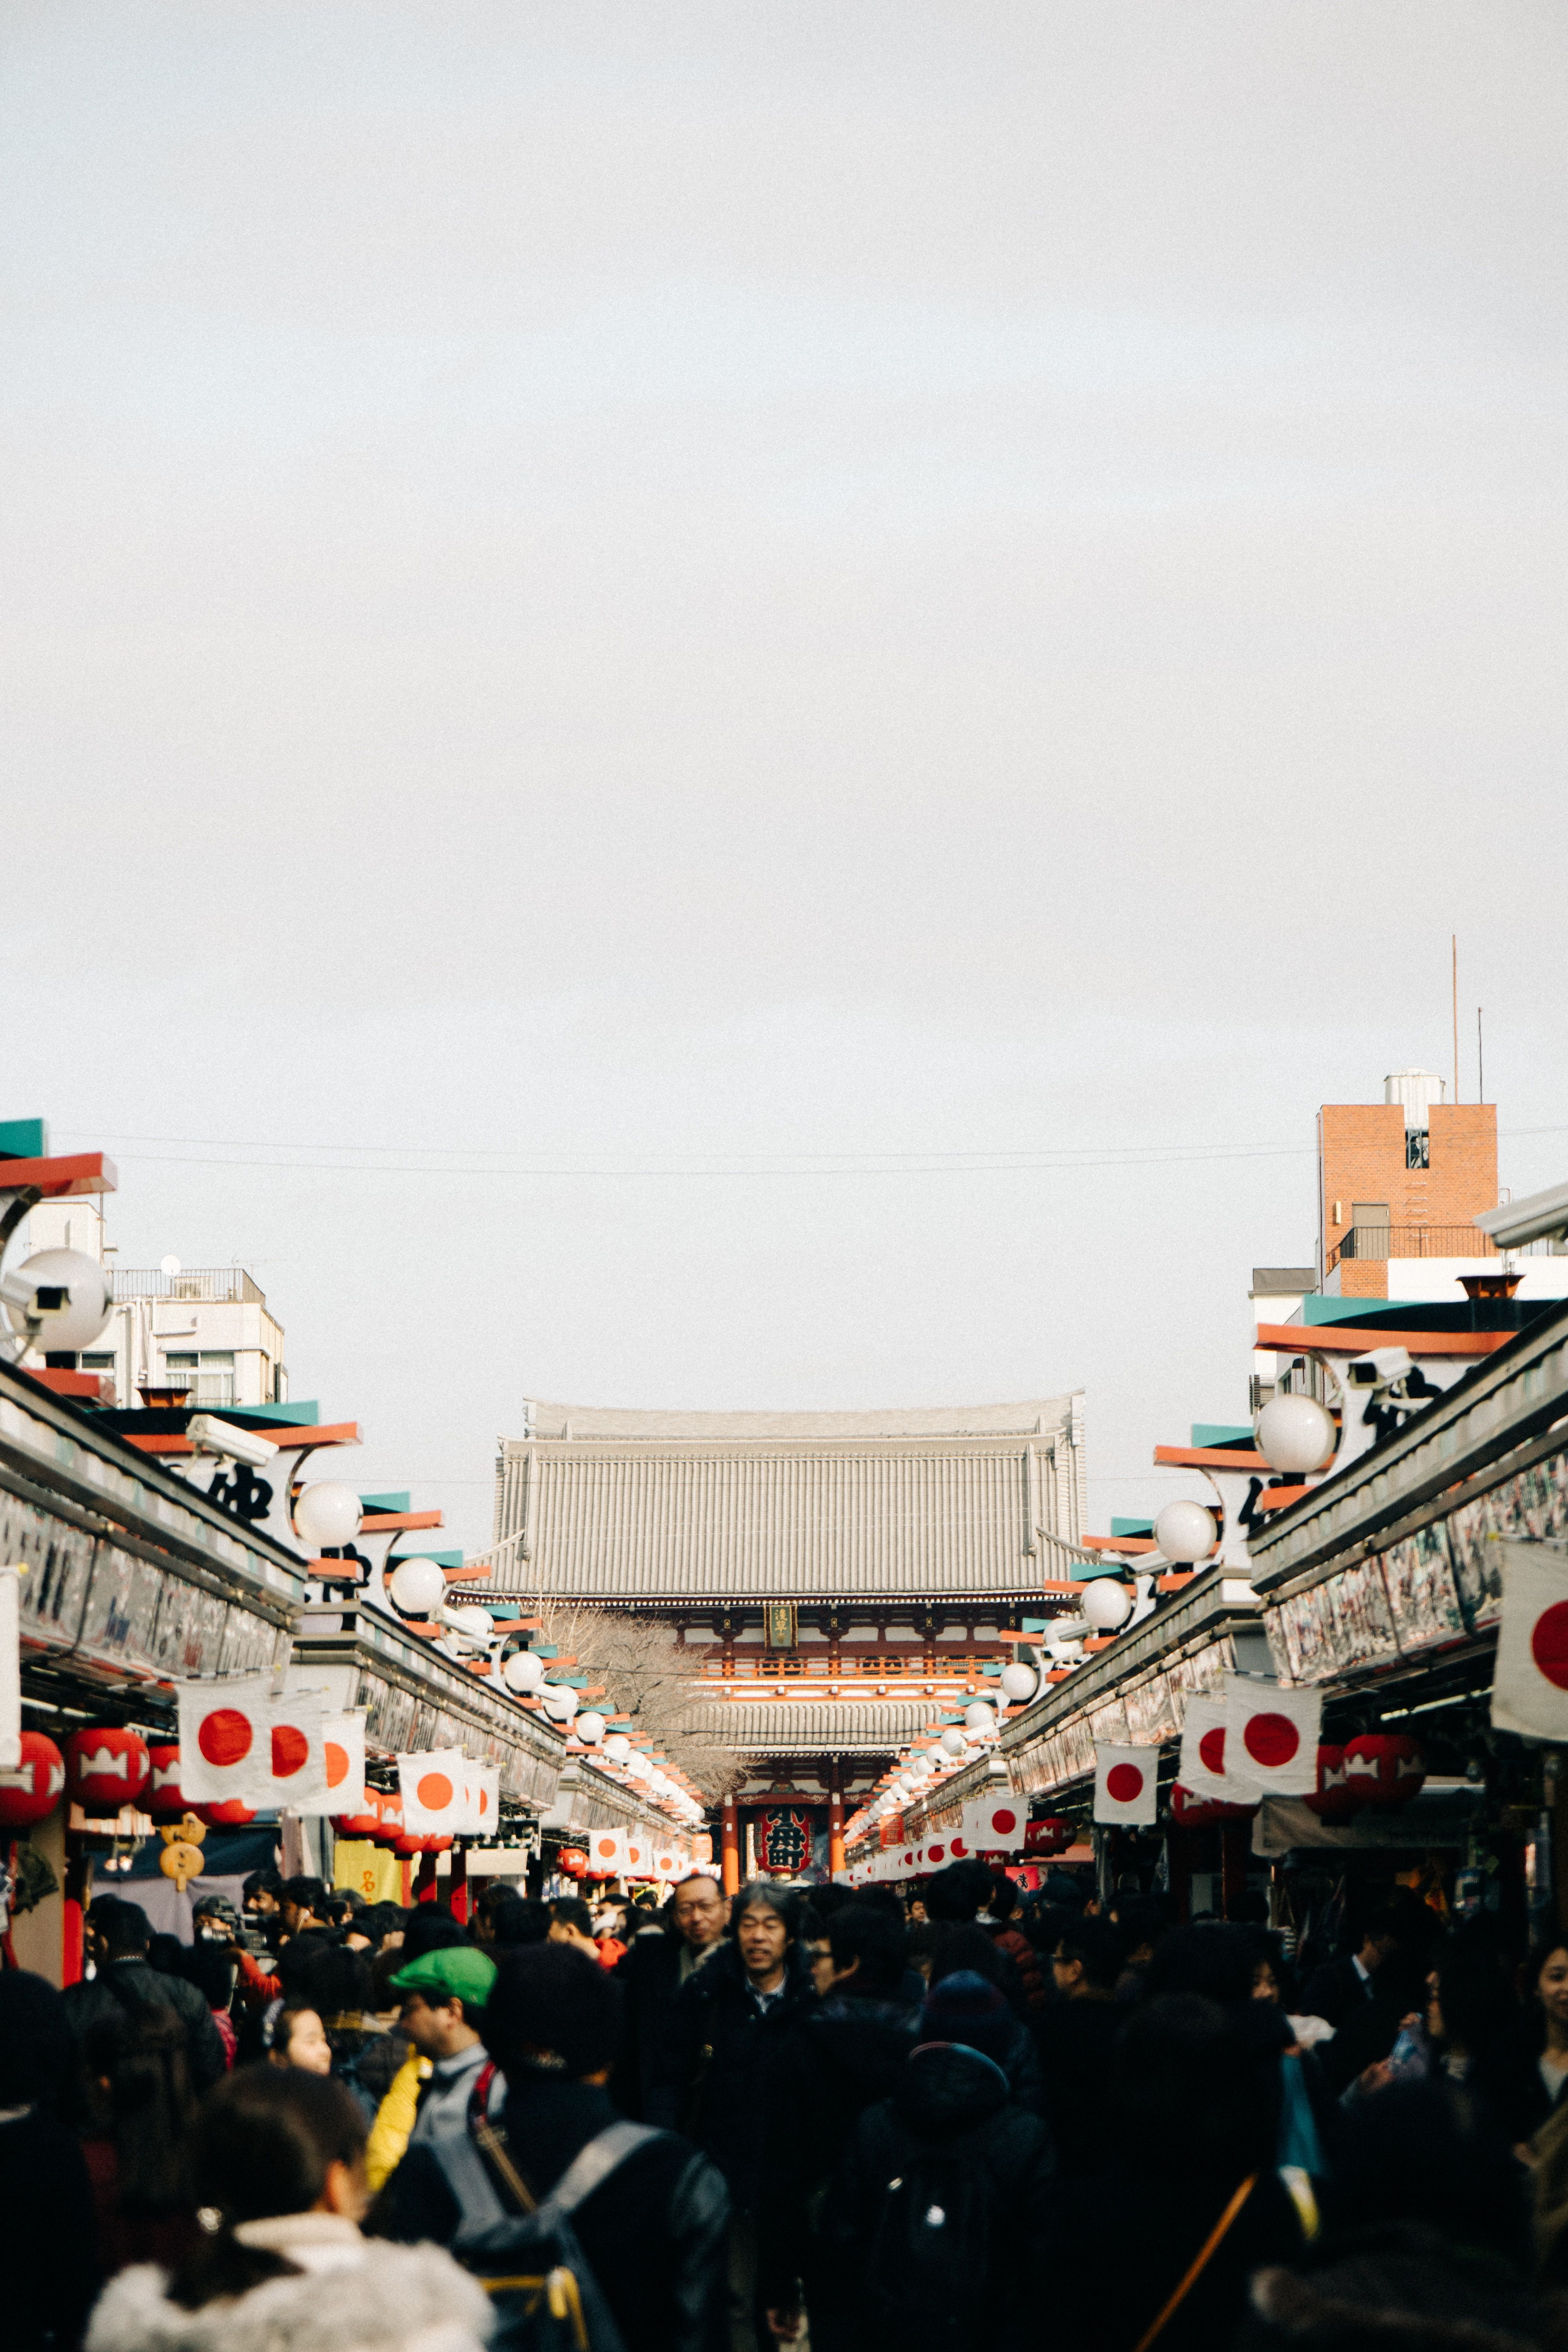 Observations of Japanese culture through local food, people and market visits to learn more about its traditions, beliefs and celebrations. #Japan #Japanese #JapaneseFood #JapaneseMarket #JapaneseCulture #AsianCulture #WorldCulture #KultureKween #Culture #LocalFood #LocalMarket